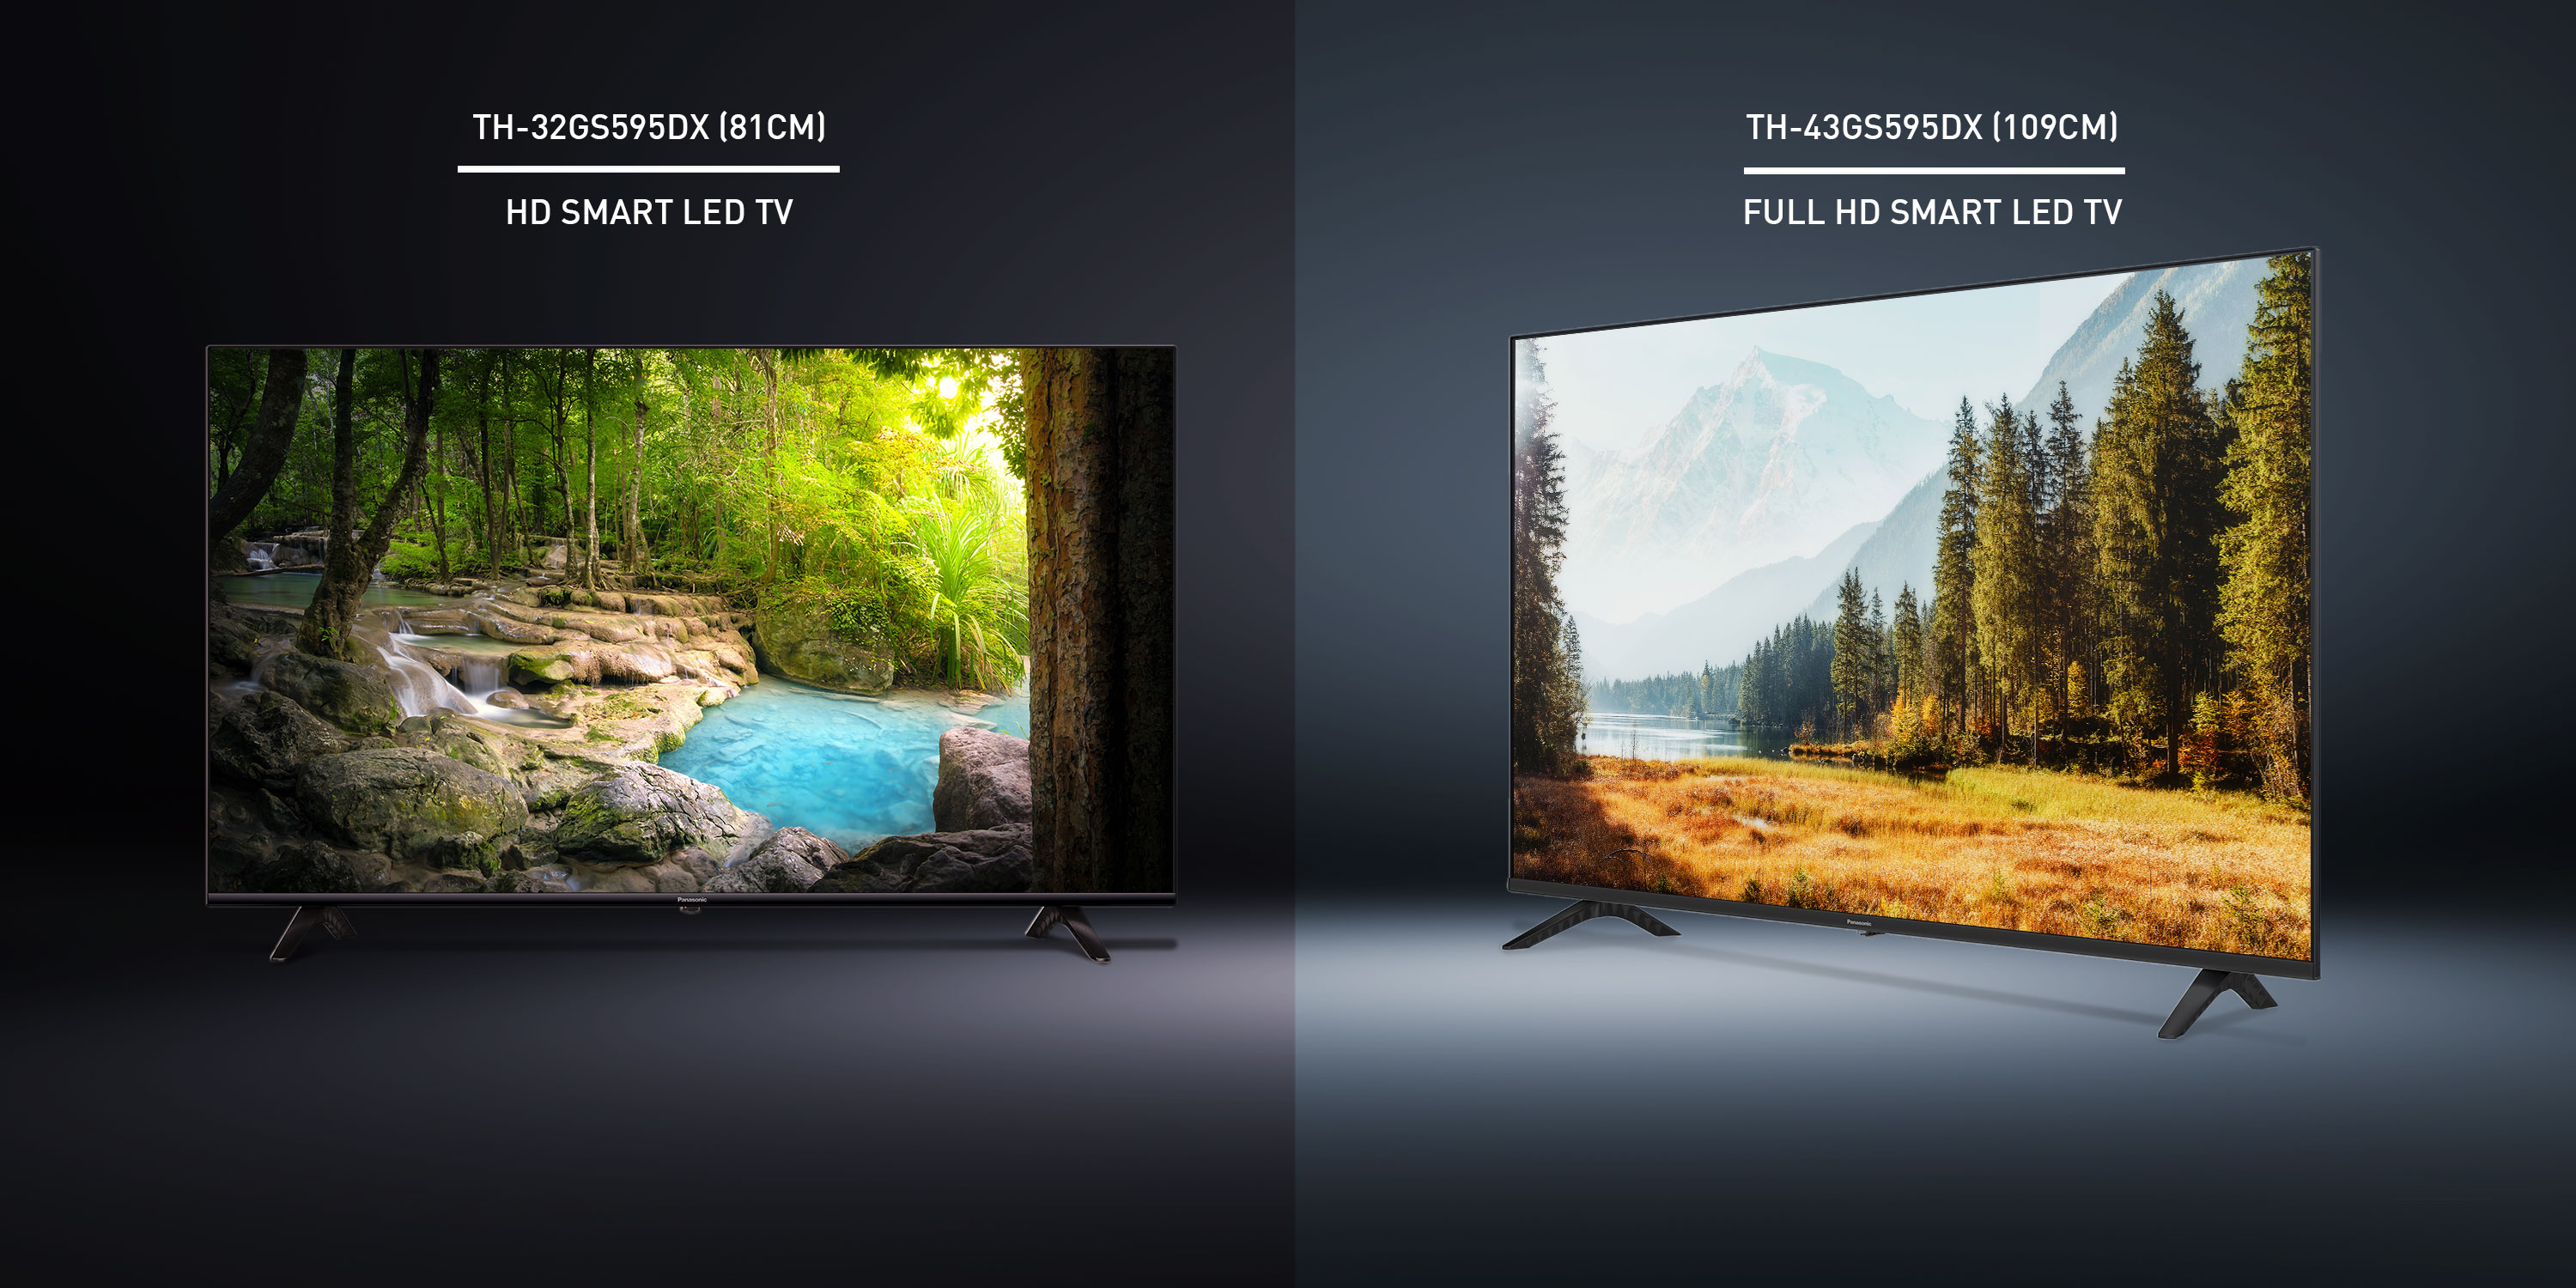 Panasonic launches 14 models in its 4K Ultra HD TVs range